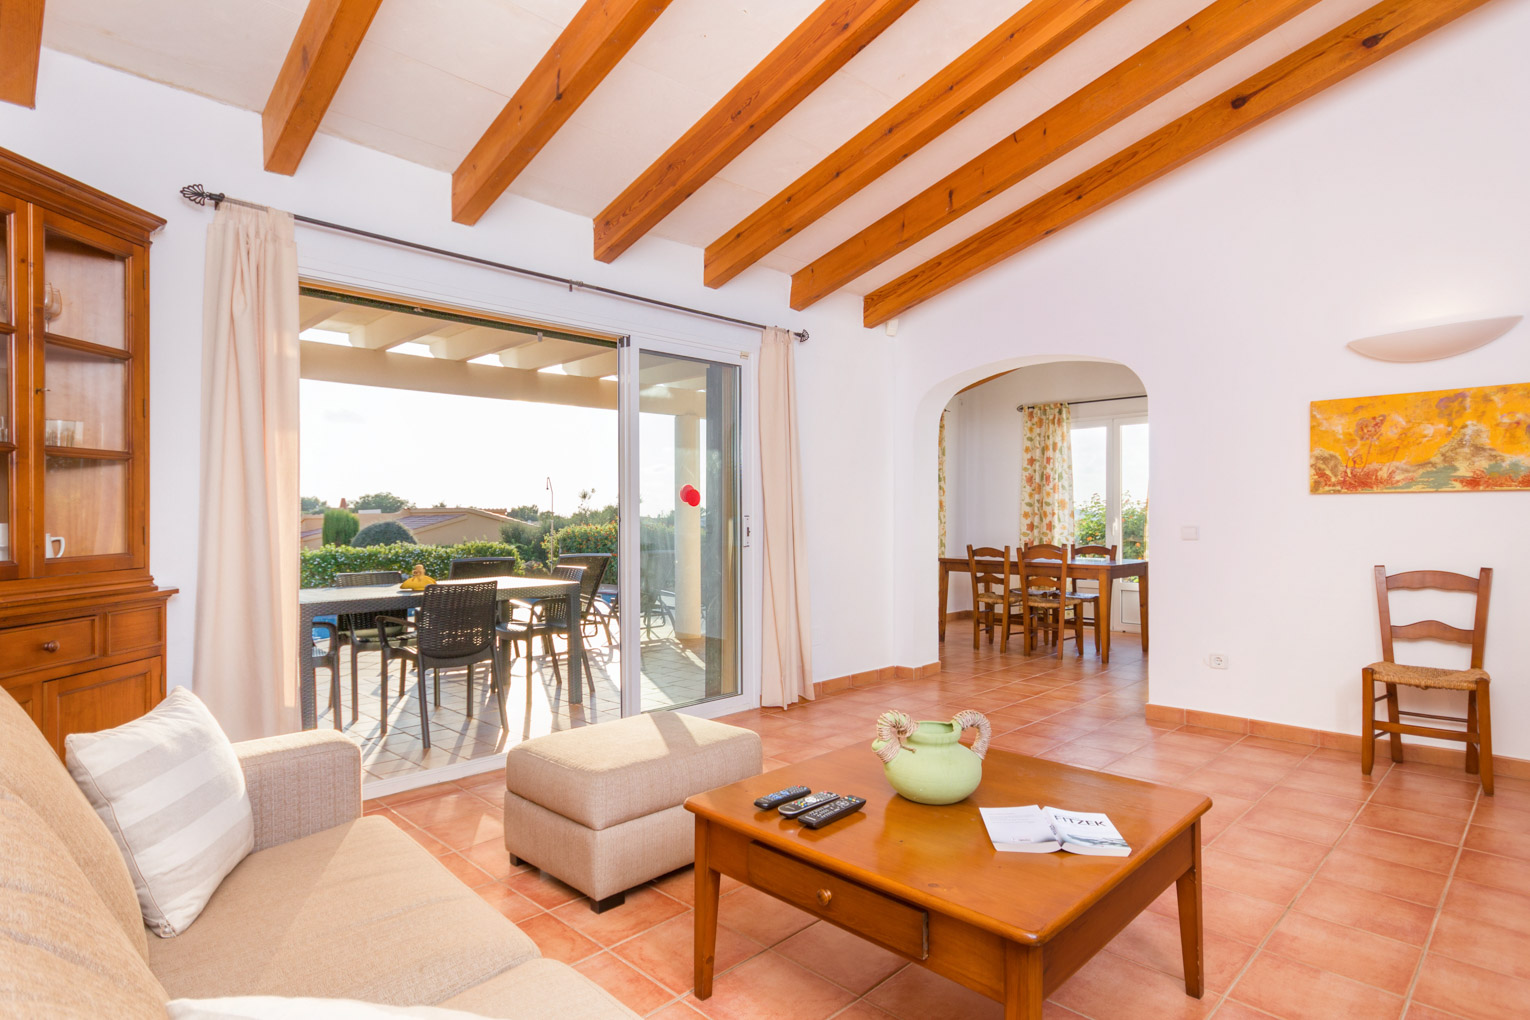 Villas Menorca Sur (2 Bedrooms) Picture 10